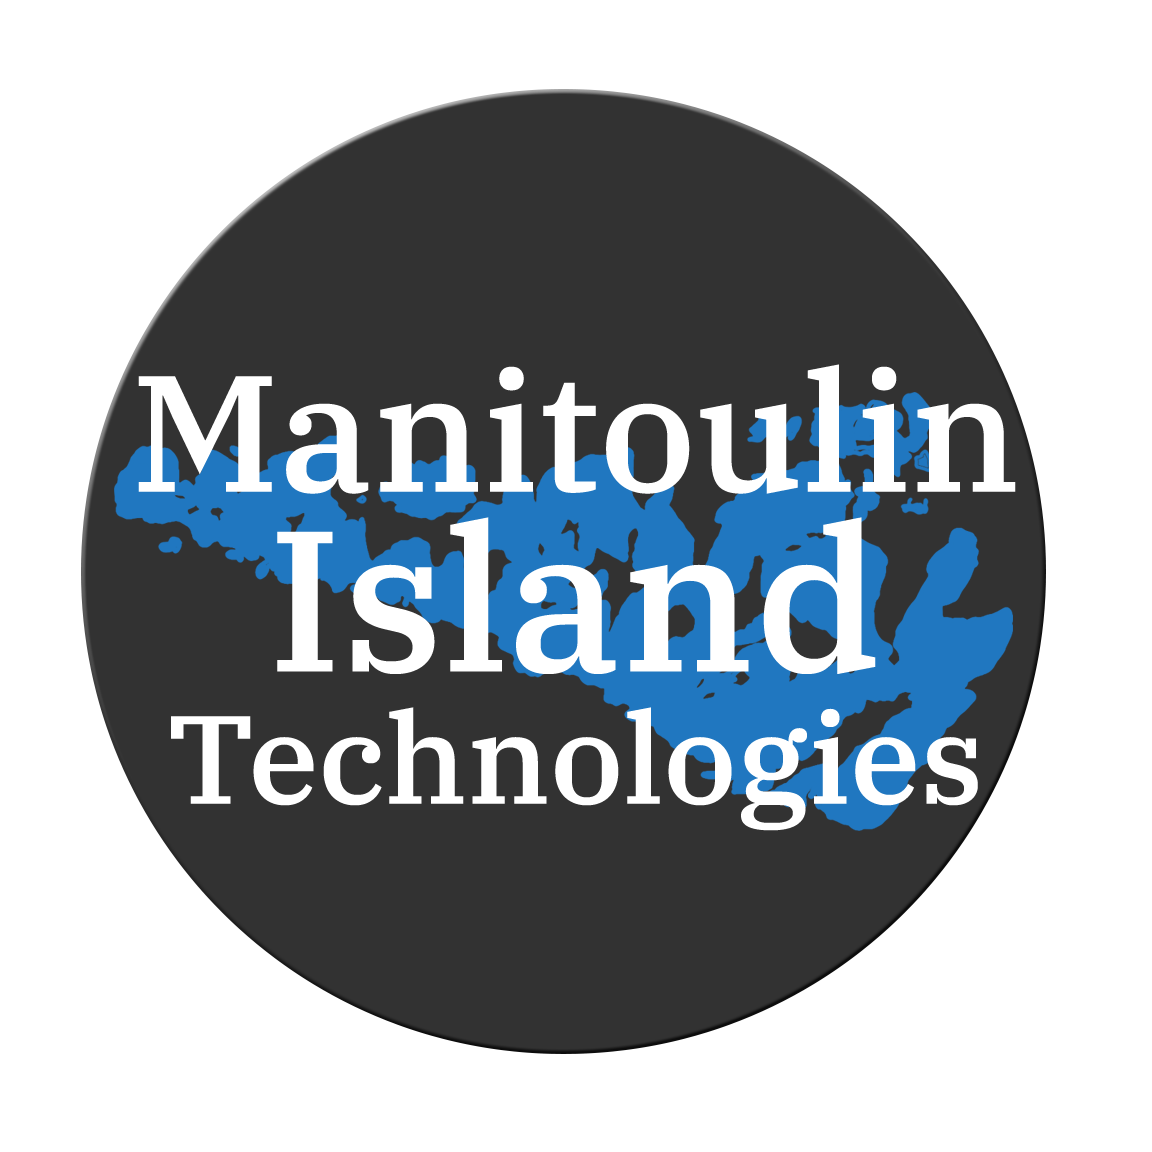 Manitoulin Island Technologies